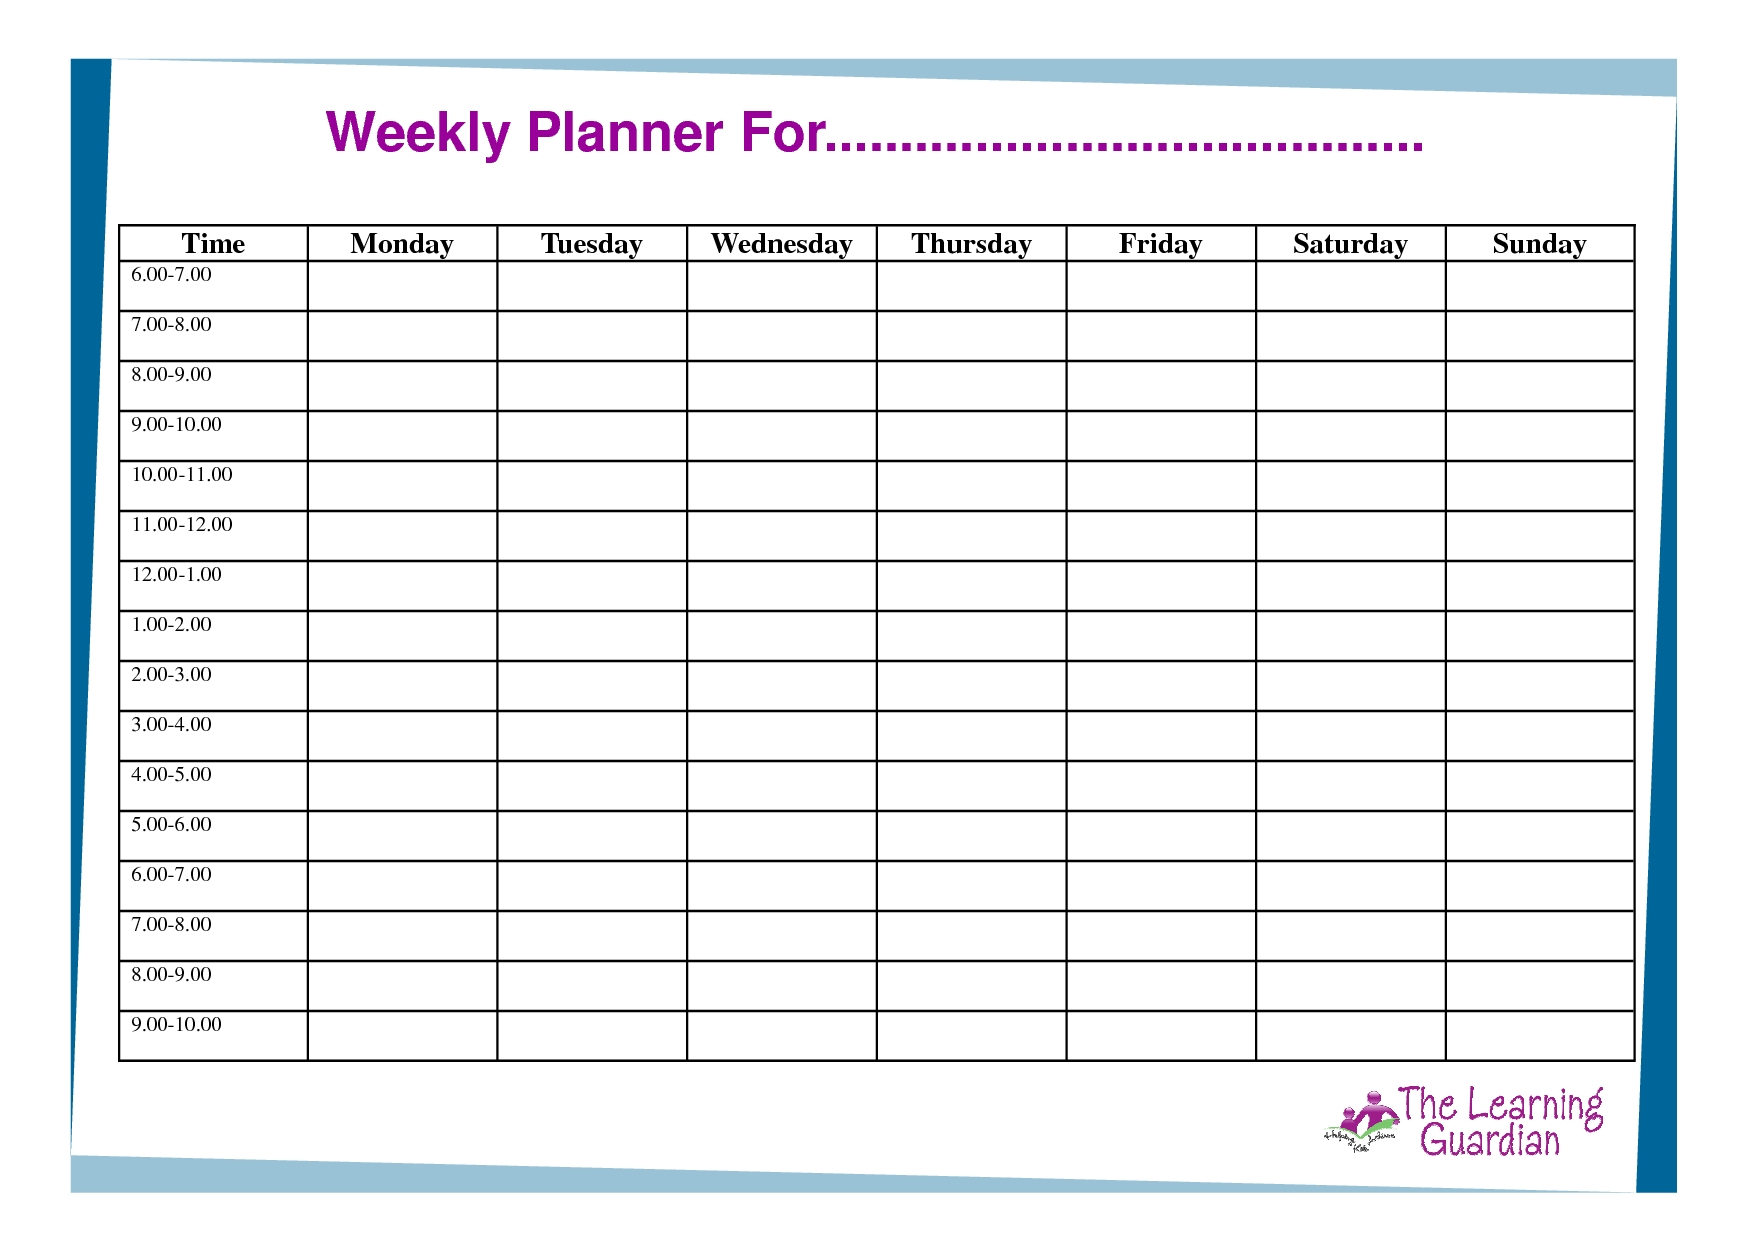 Weekly Planner With Time Slots Word Template  Calendar inside Weekly Calendar With Time Slots Template